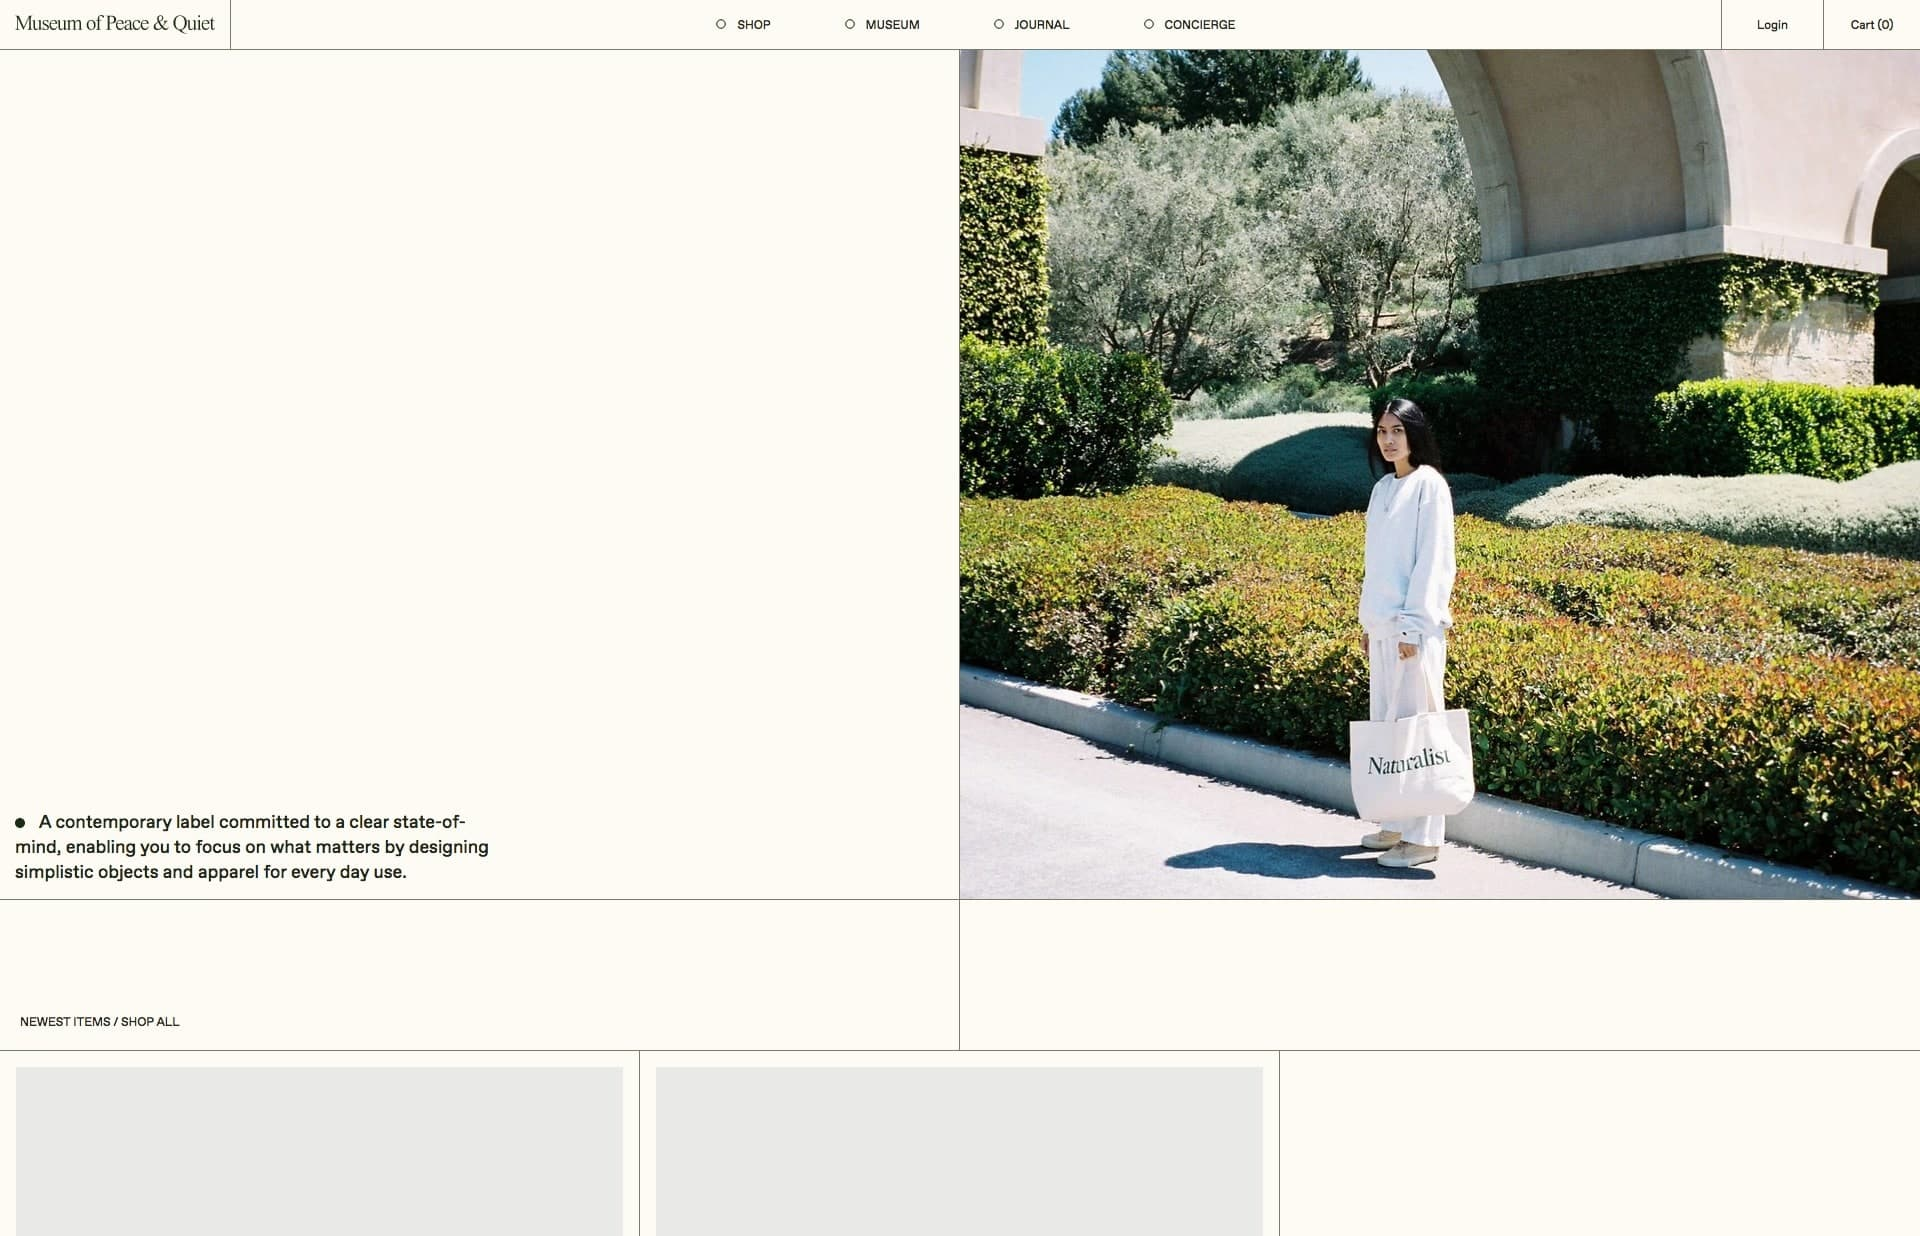 Screenshot of the website Museum of Peace and Quiet, featured on The Gallery, a curated collection of minimal websites